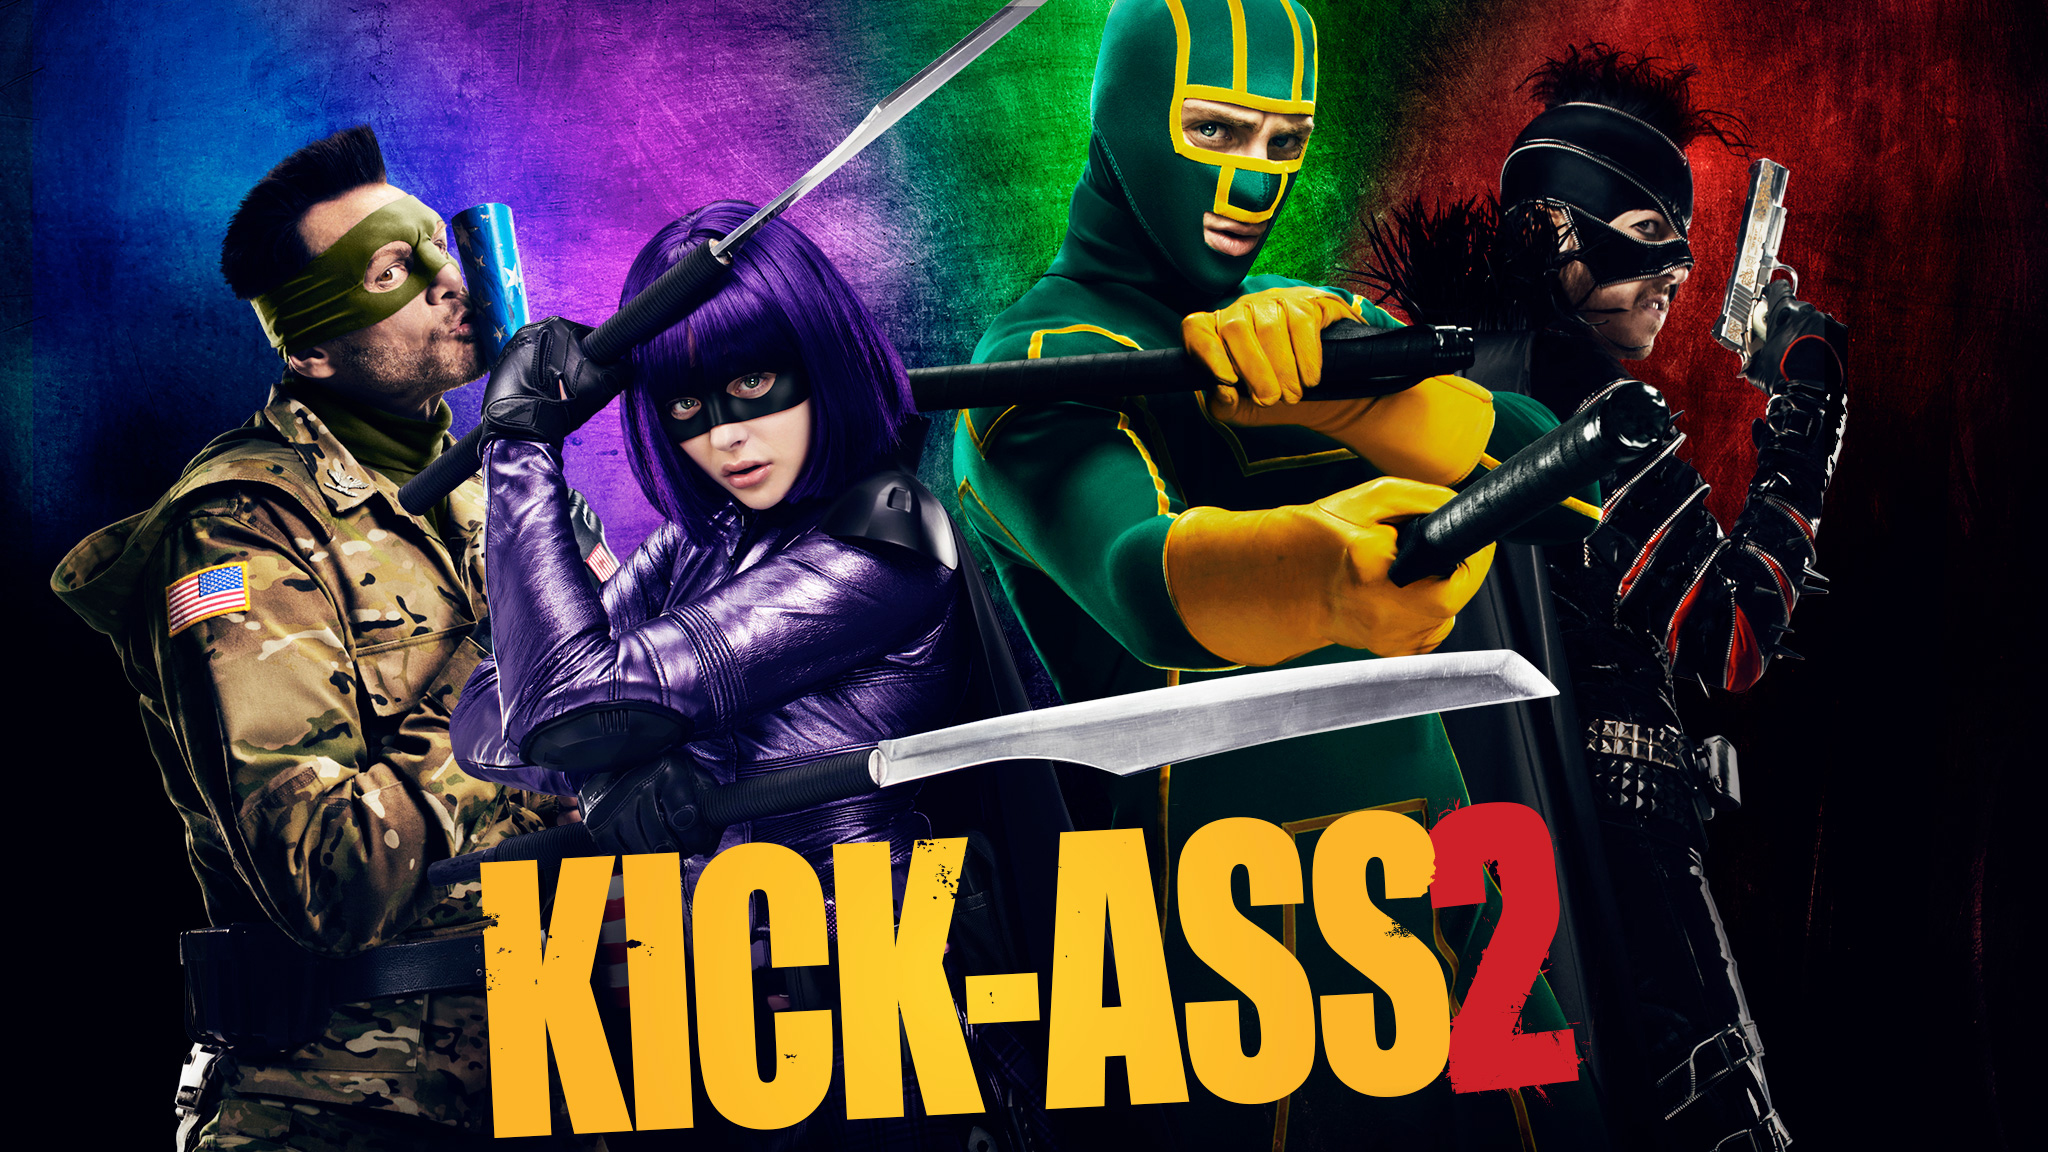 Kick Ass 2 Hd Wallpaper Background Image 2048x1152 Id